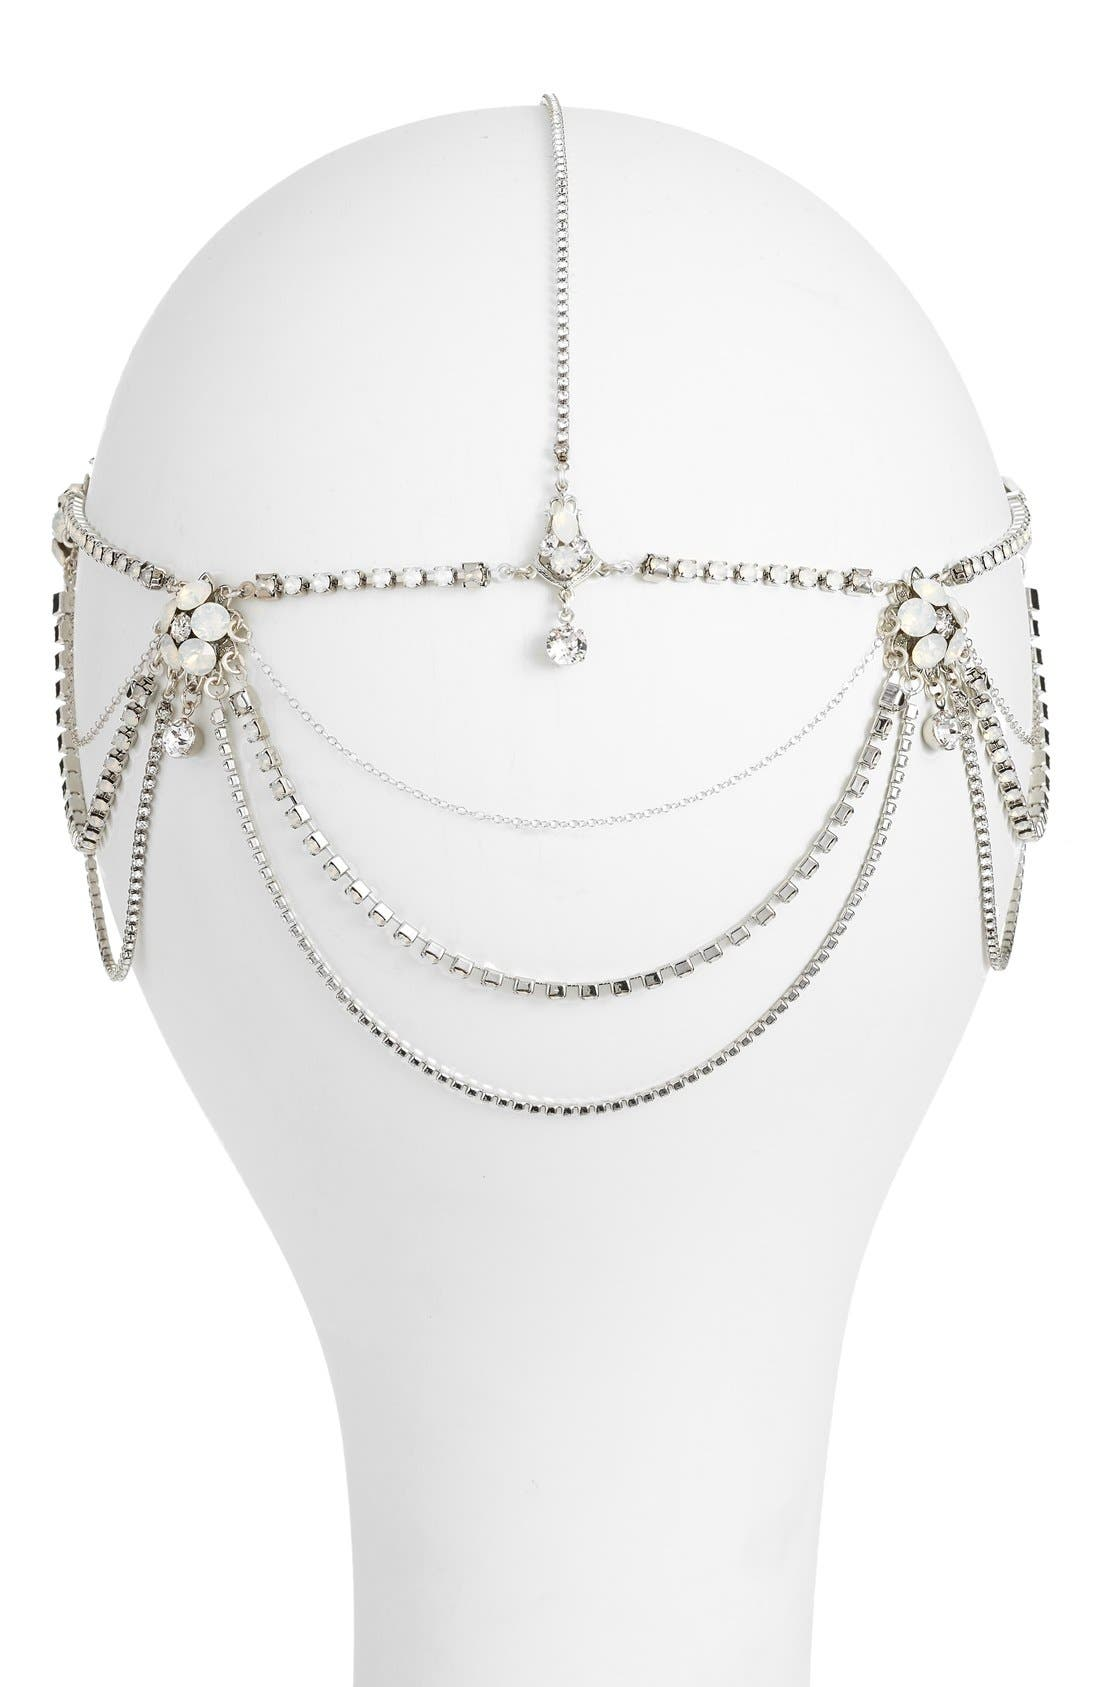 'Madeline' Floral Crystal Hair Chain,                             Alternate thumbnail 5, color,                             Crystal/ White Opal